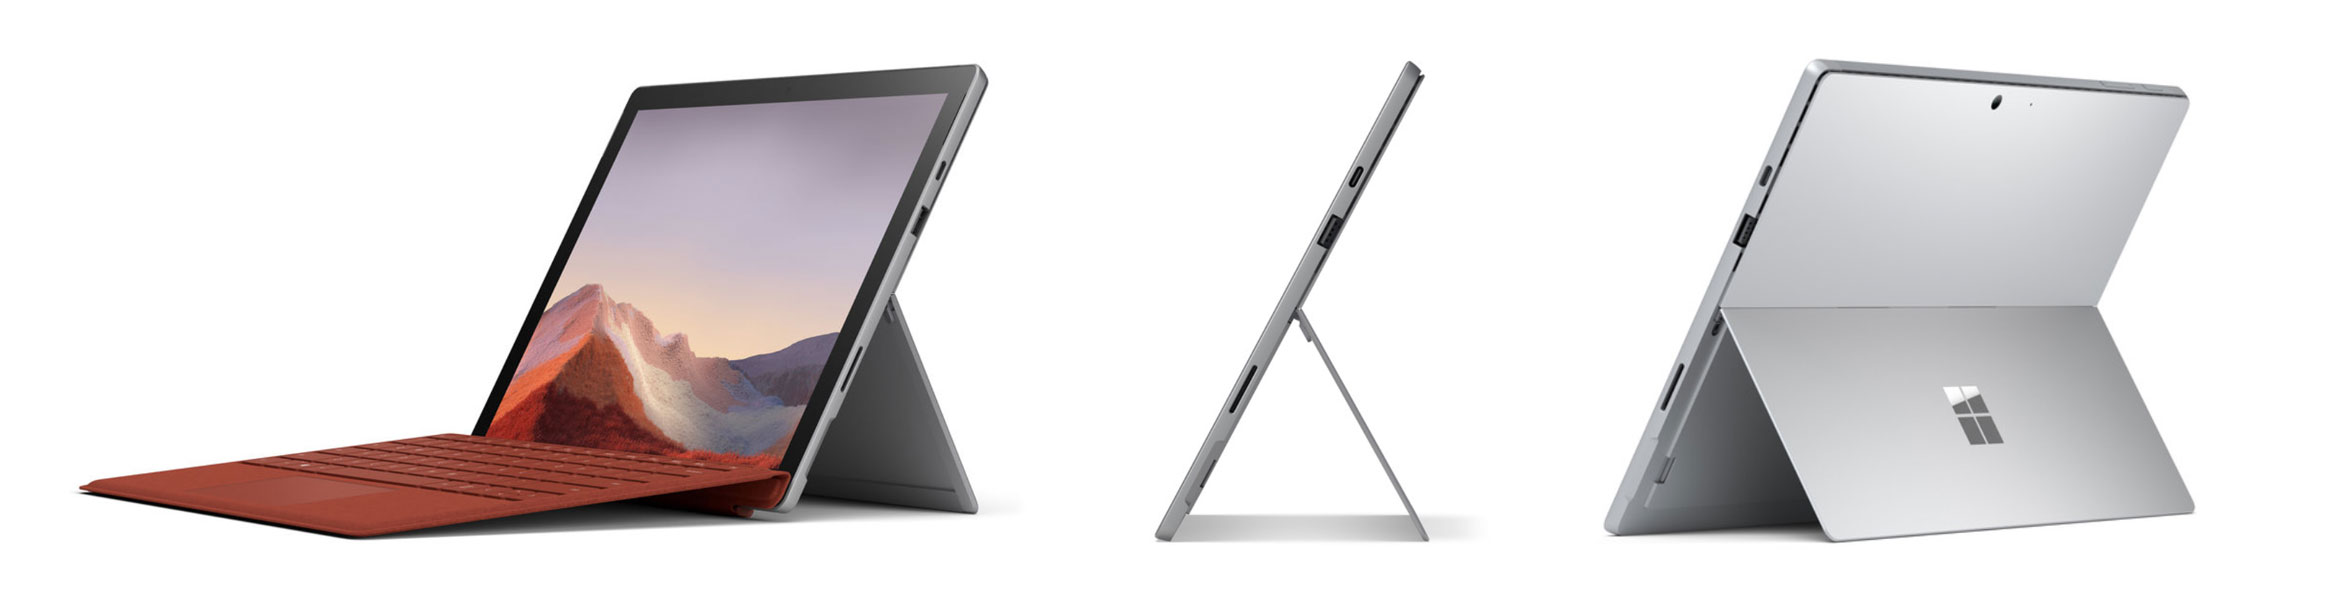 Surface Pro 2-in-1 tablet